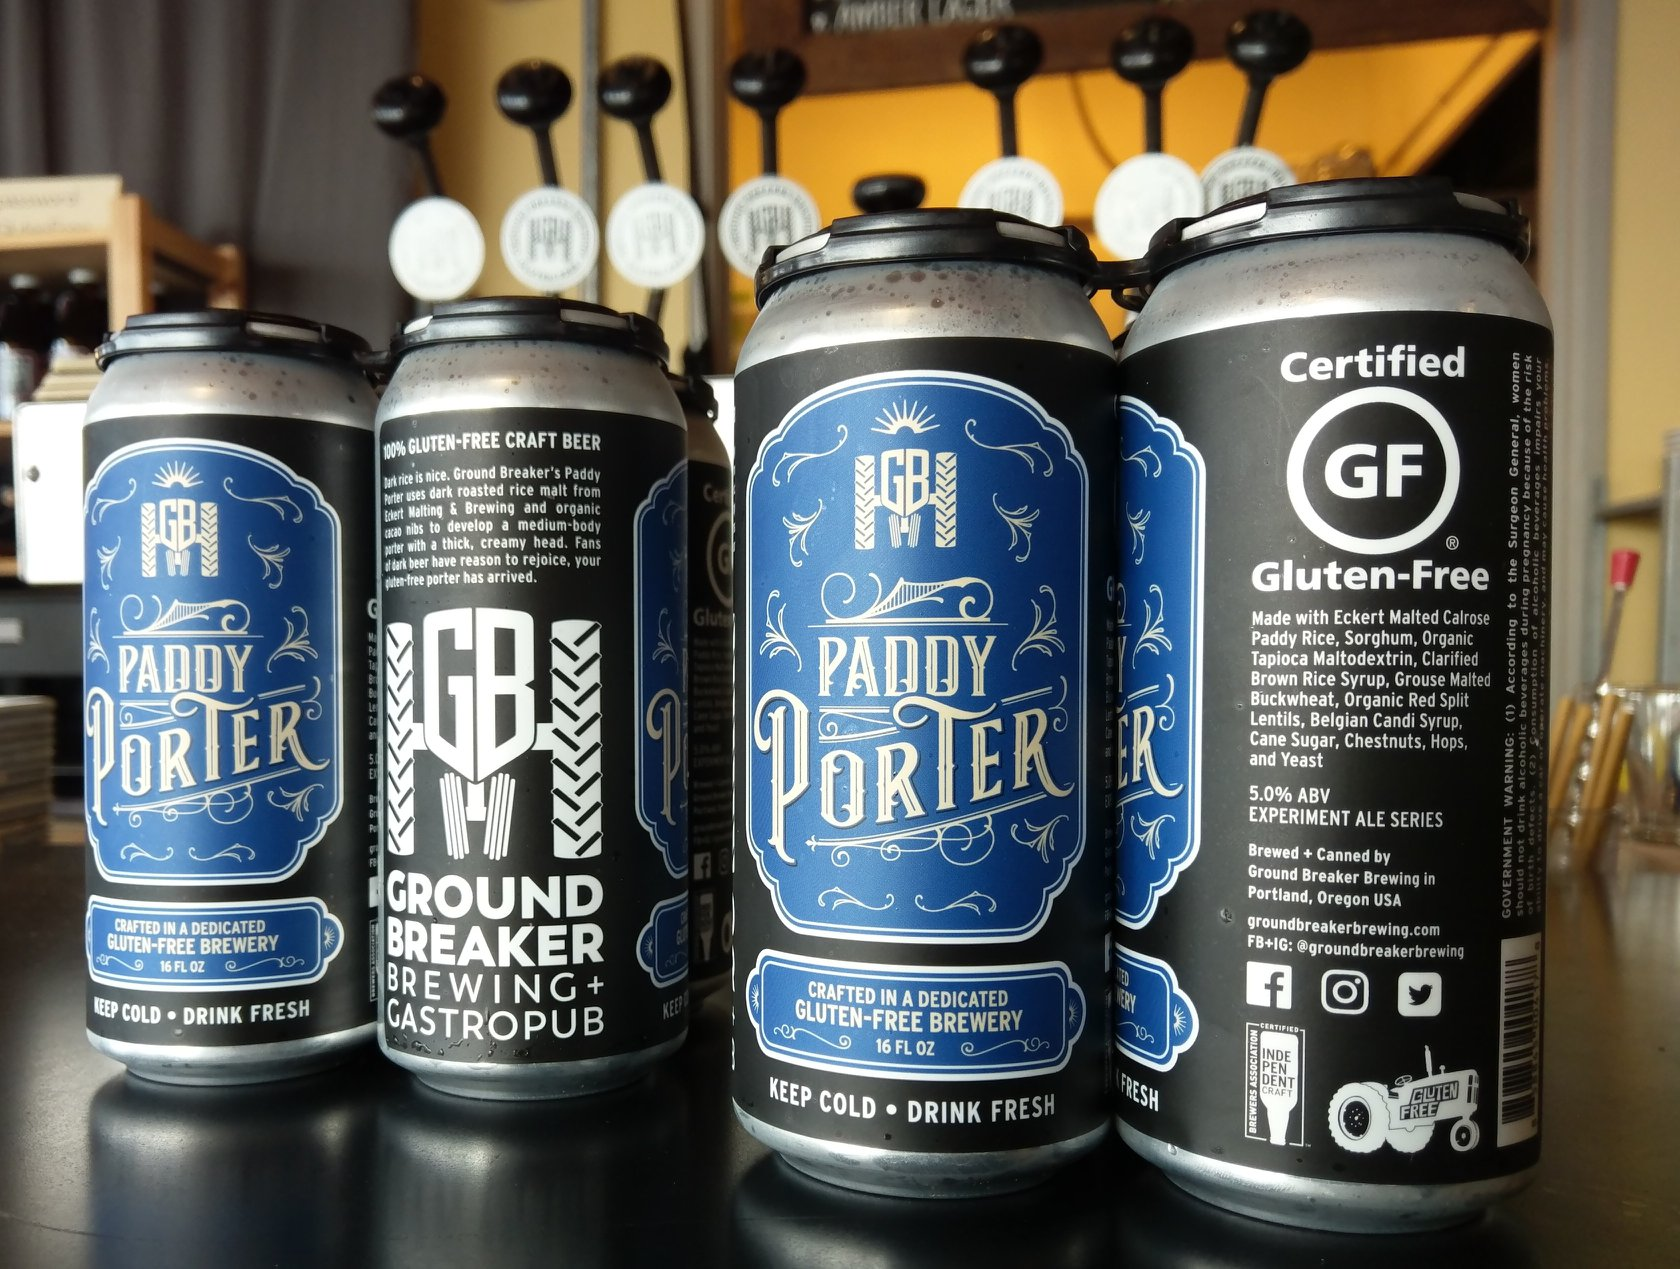 image of Paddy Porter courtesy of Ground Breaker Brewing